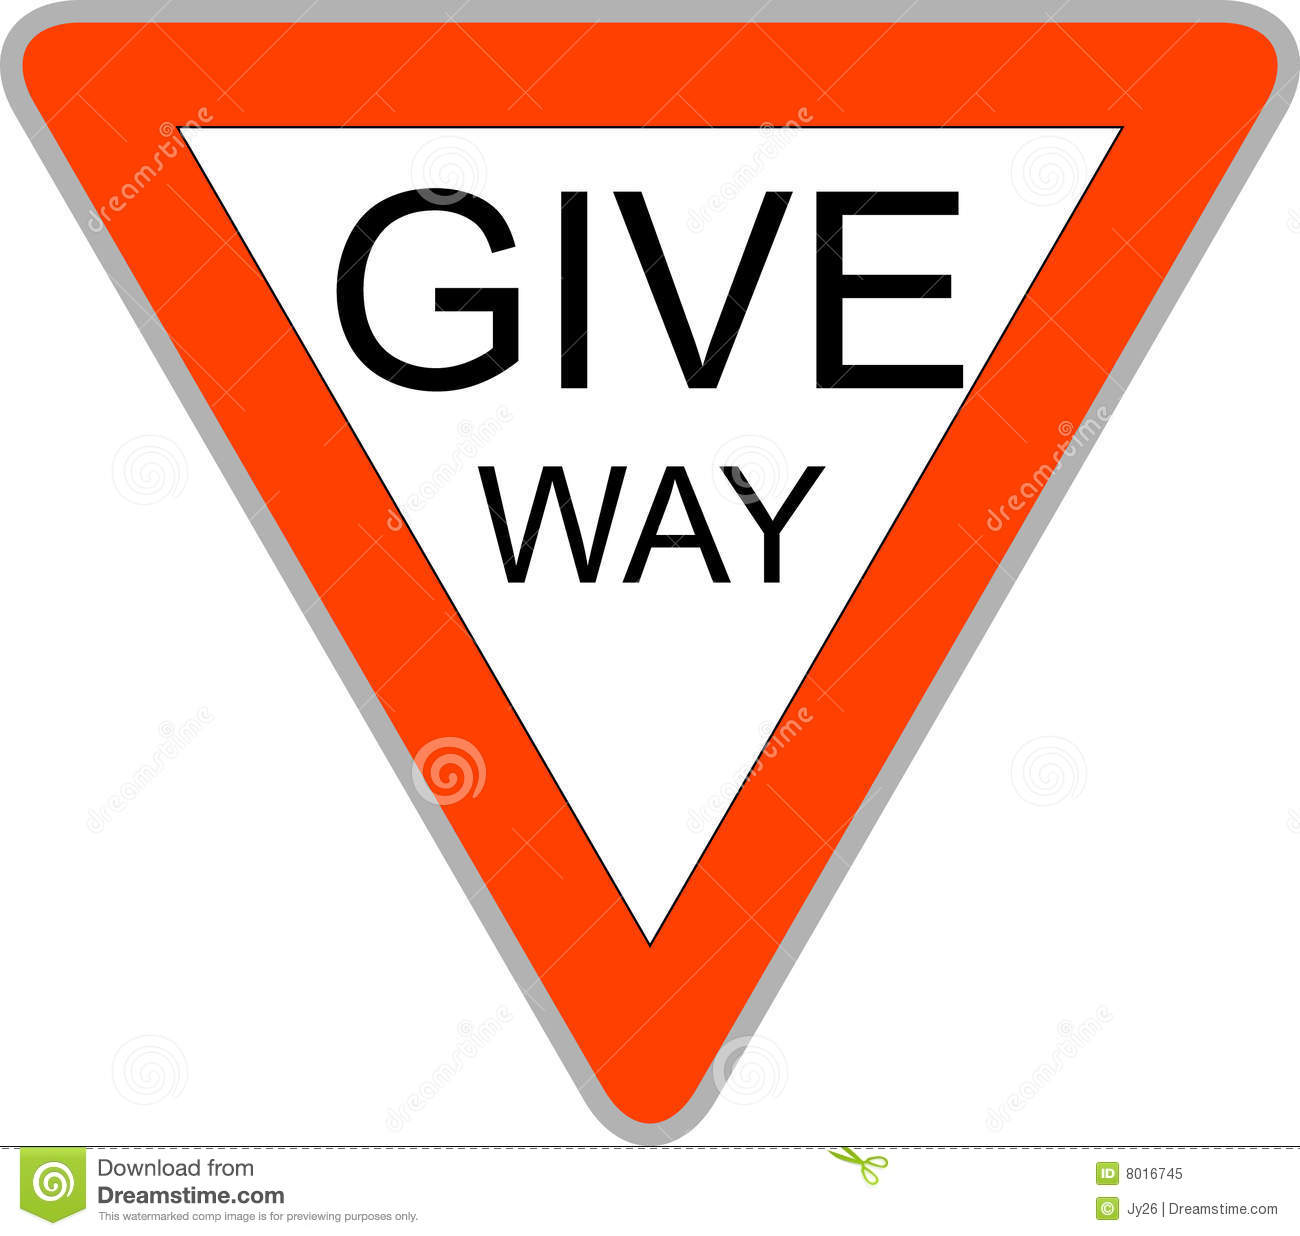 Give Way Sign Royalty Free Stock Photo  Image 8016745. Noise Signs. Carina Signs. Requirement Signs Of Stroke. Movie Theater Signs Of Stroke. Ohio State Signs. Personalized Signs Of Stroke. Persistent Depressive Signs. Sleep Deprivation Signs